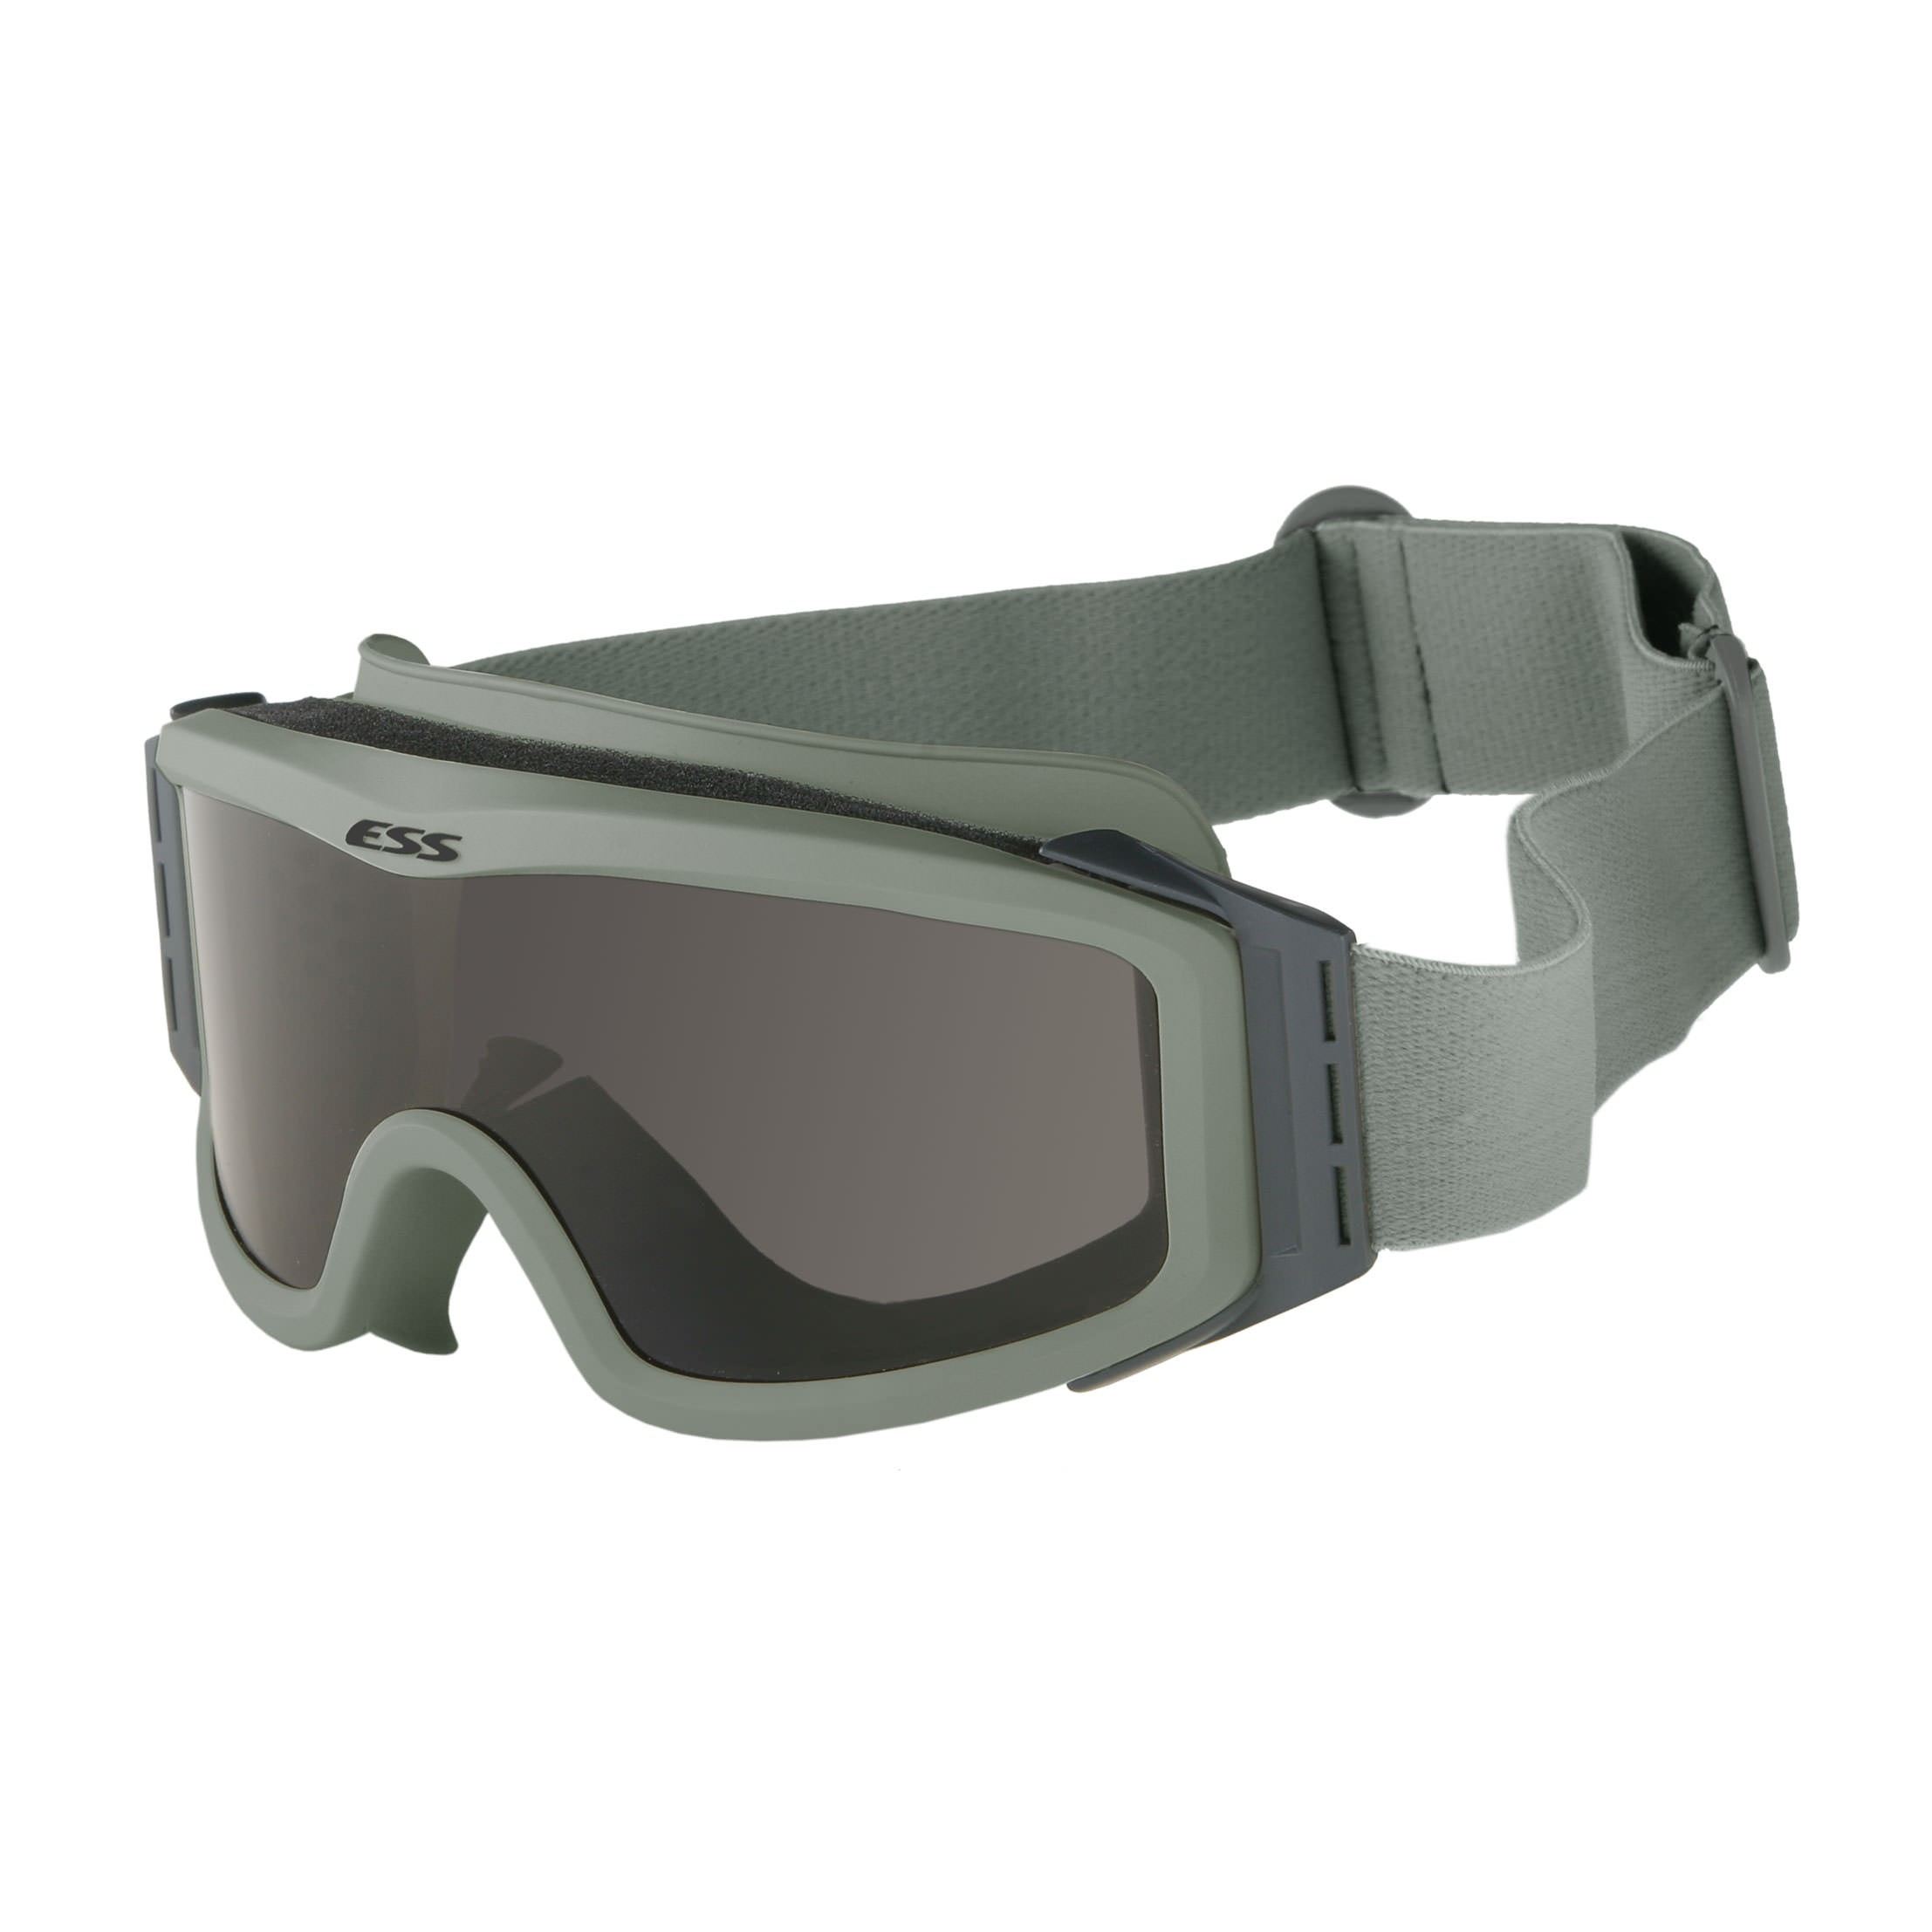 ESS Profile NVG Unit Issue - Foliage Green ESS-740-0129